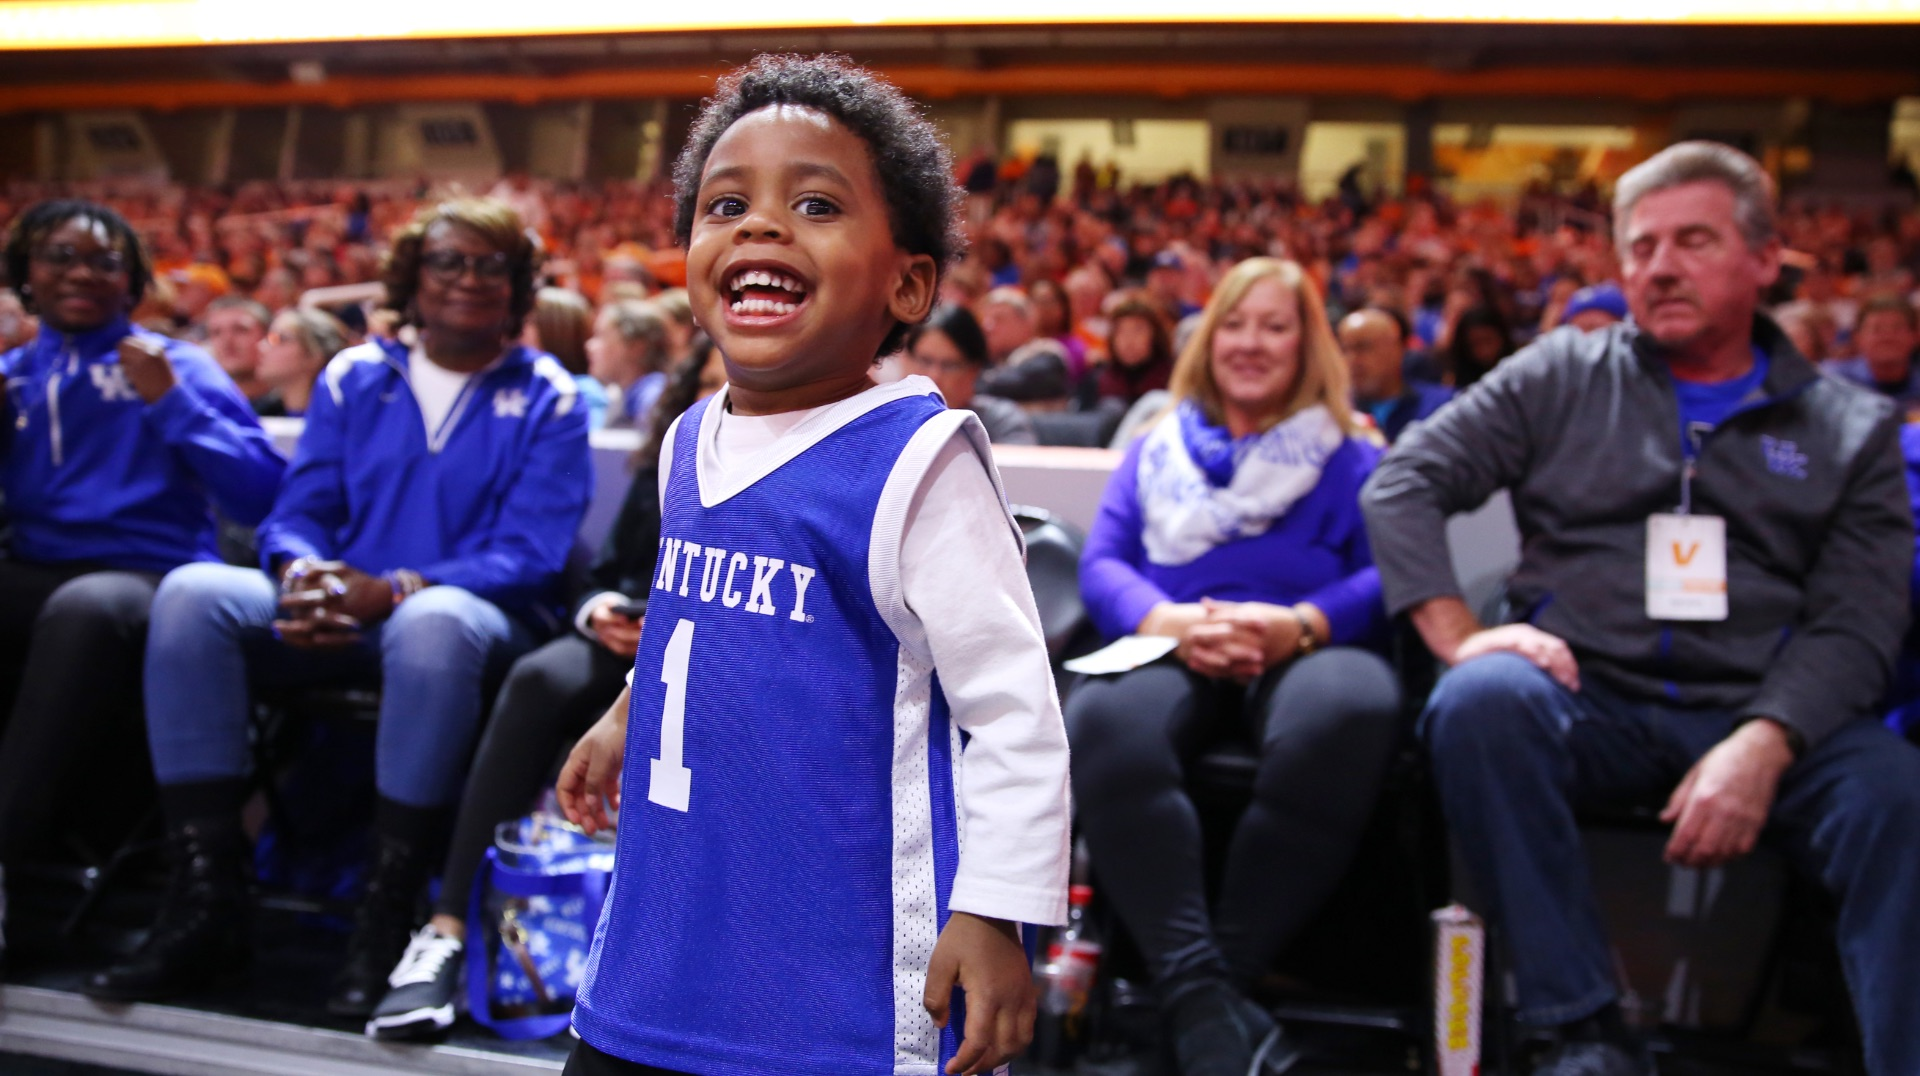 Jackson stands on the sidelines at a basketball game, smiling widely. There are several seated people behind him wearing blue and white UK colors. Jackson is wearing a Kentucky basketball jersey over a long-sleeve white shirt.